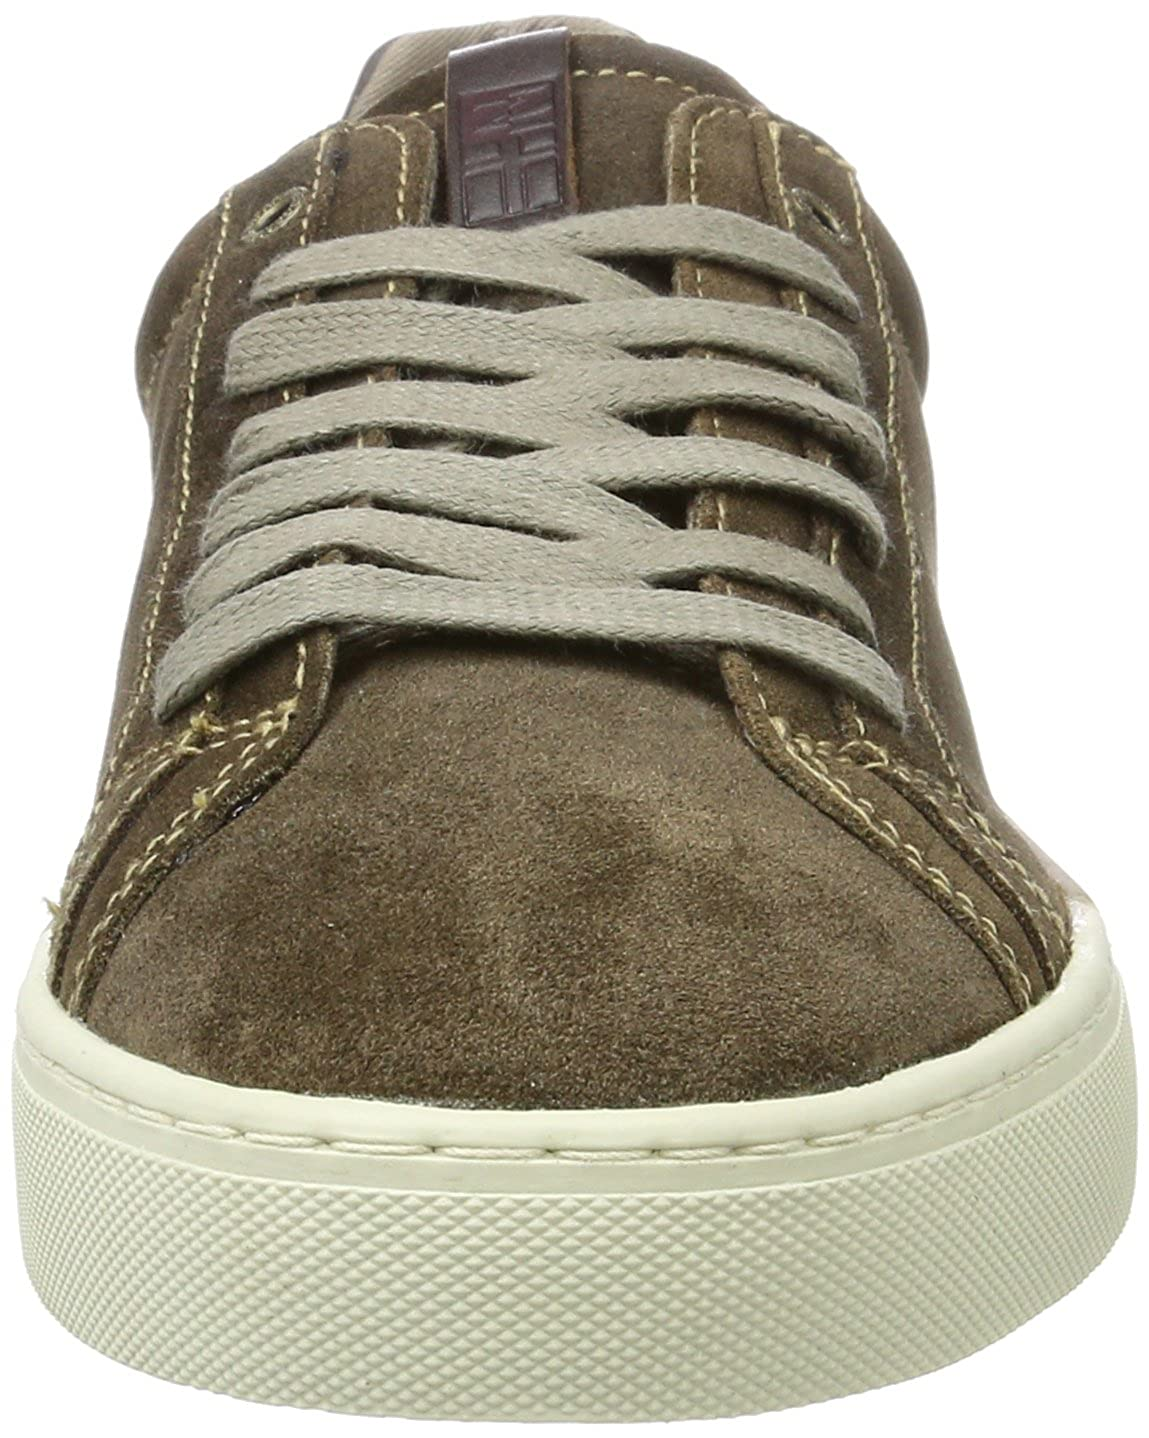 Footwear taupe Eu Napapijri Homme Baskets Marron 44 Plus dBwOH